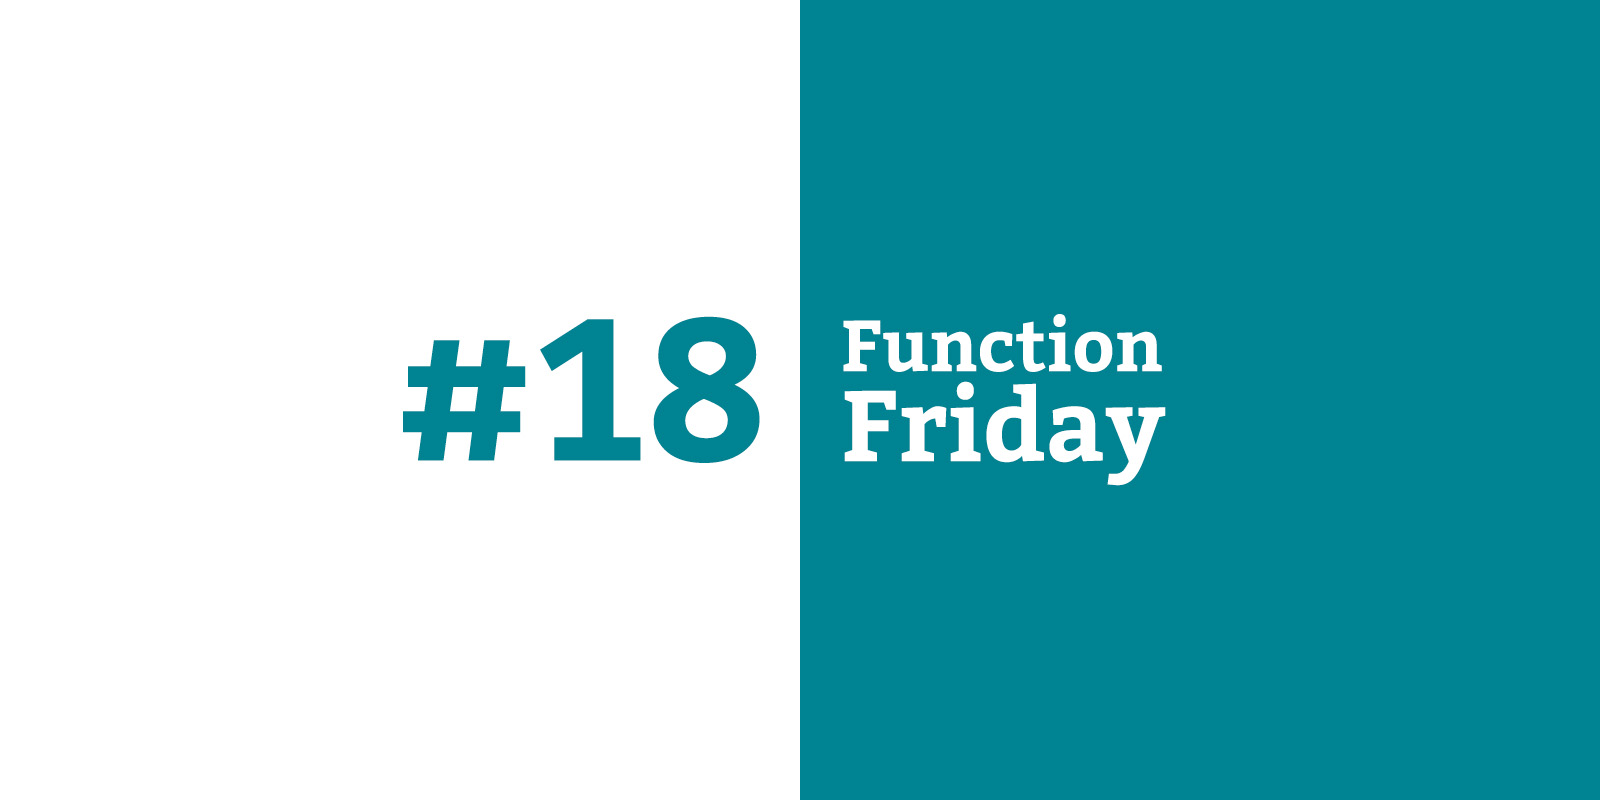 Function Friday #18